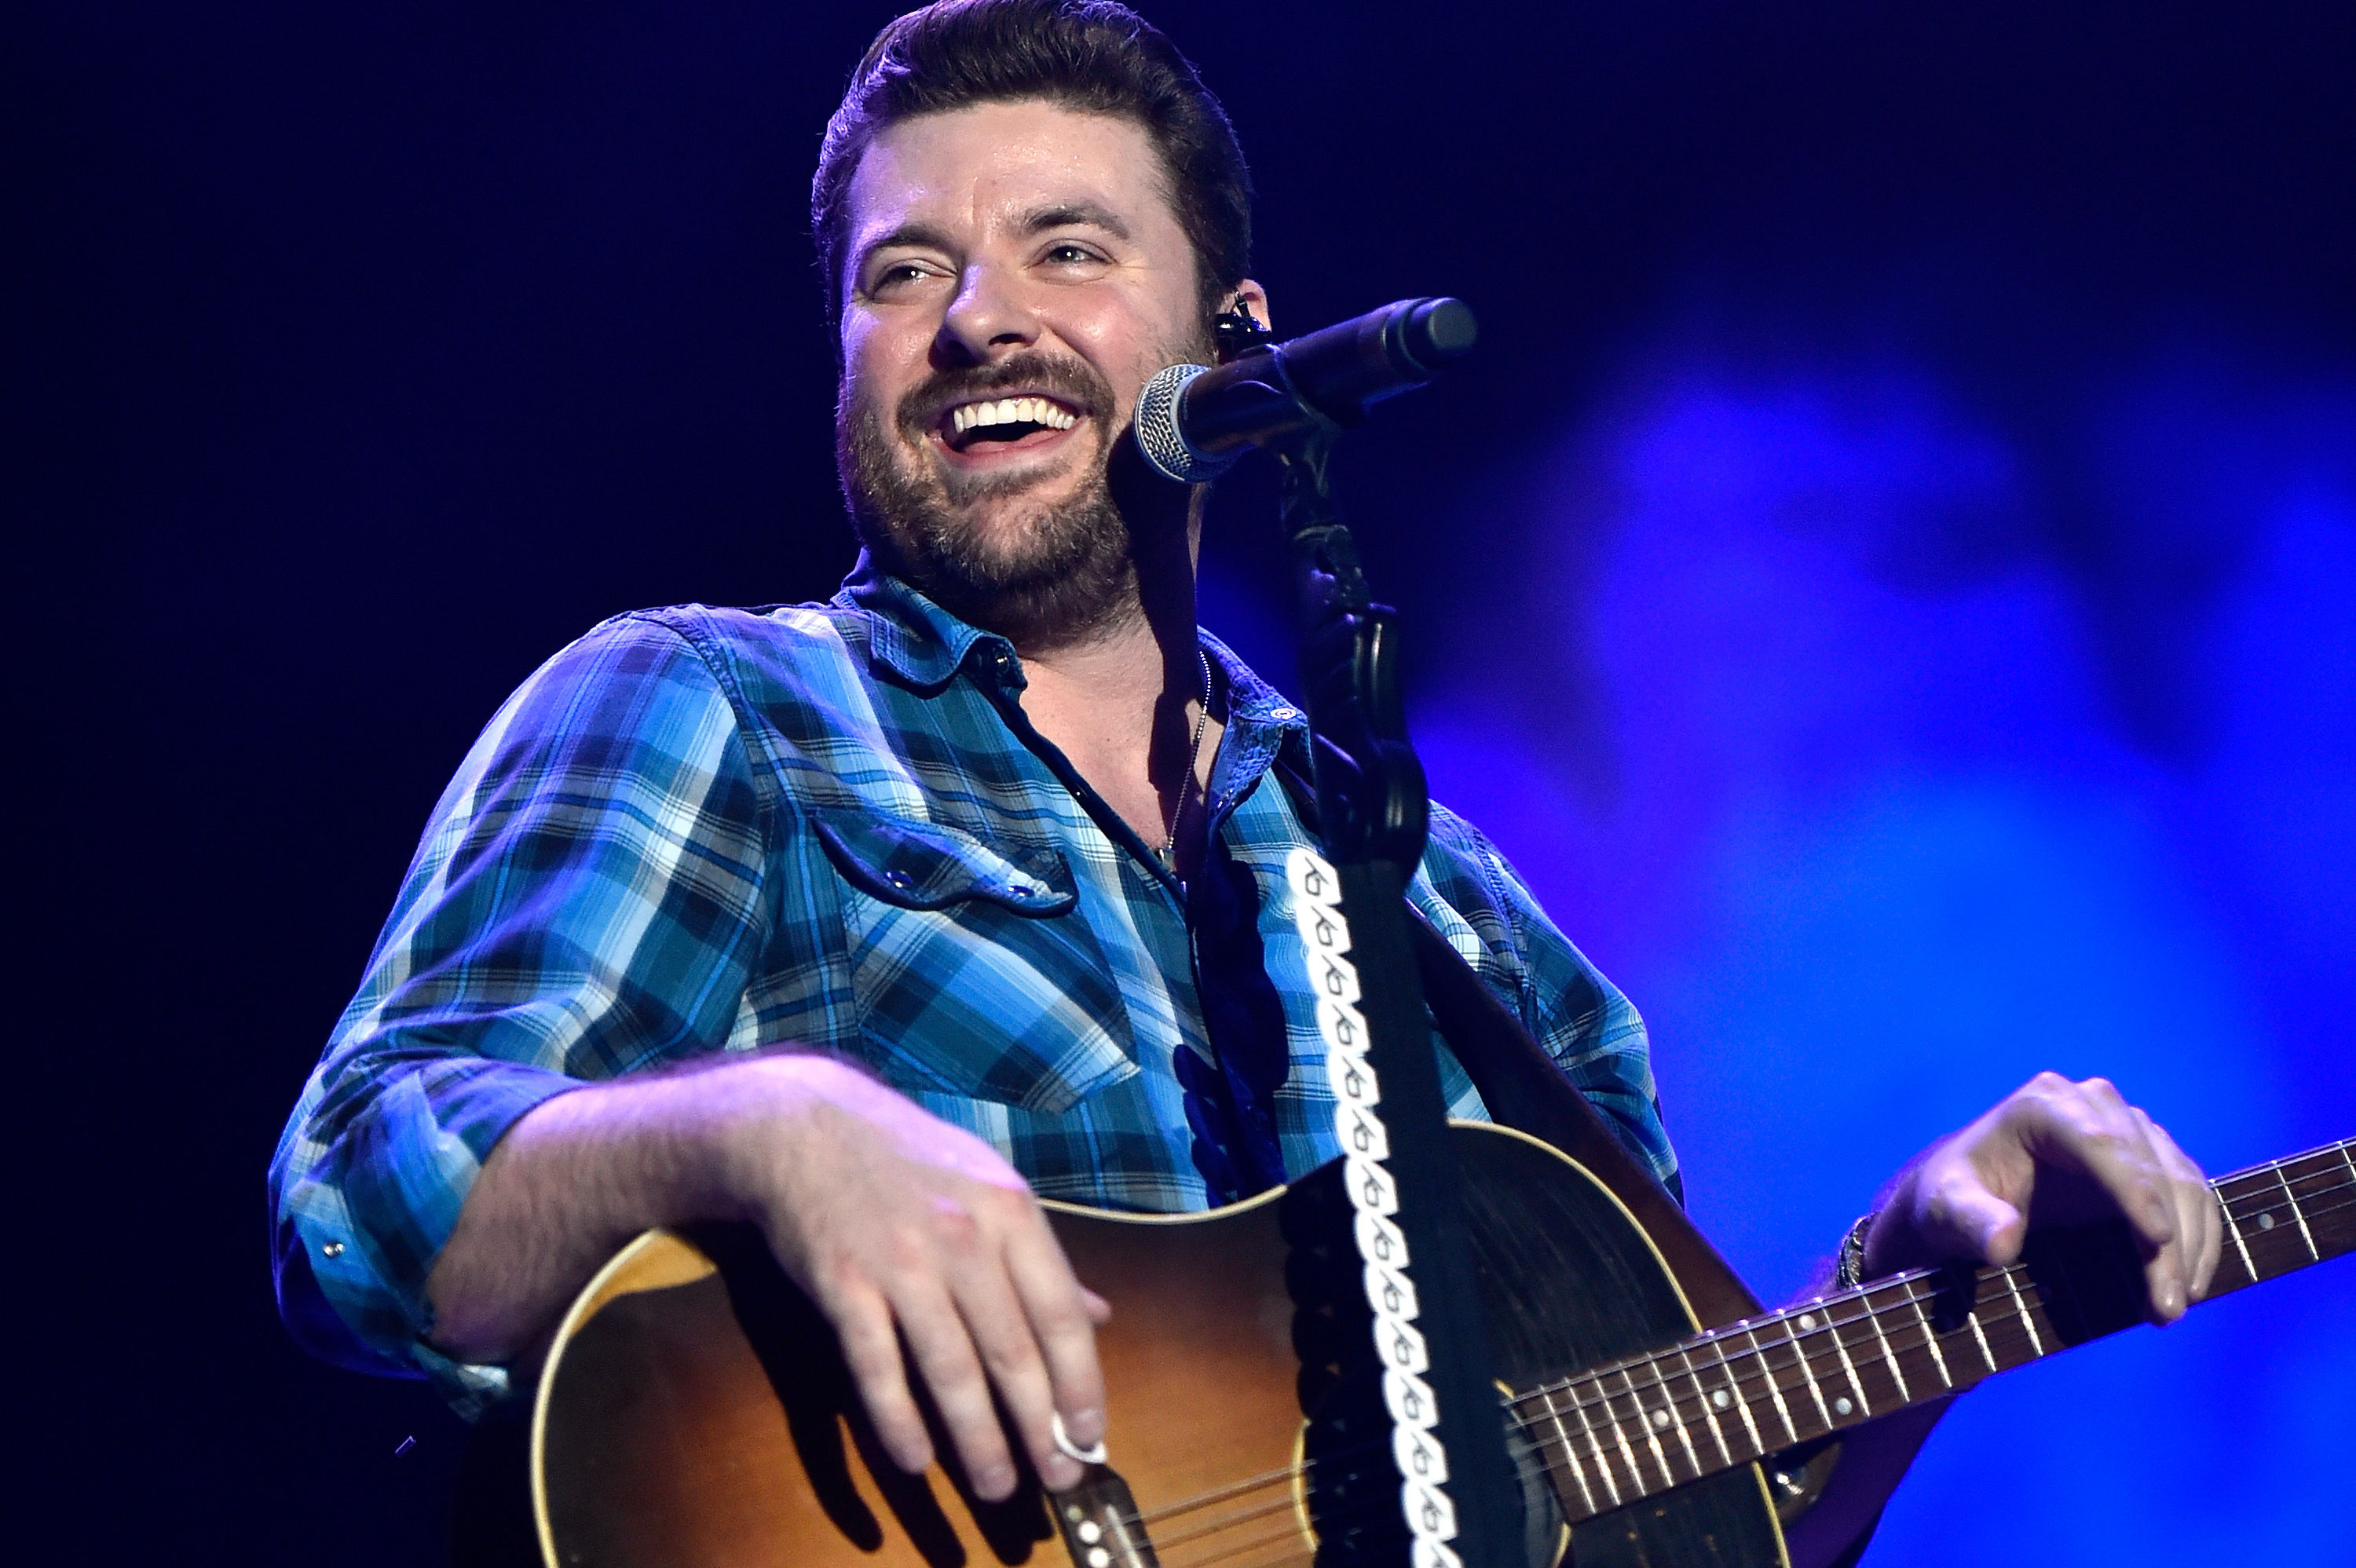 Chris Young On <em>Losing Sleep</em>, The Opry, And The Healing Power Of Music After The Las Vegas Tragedy